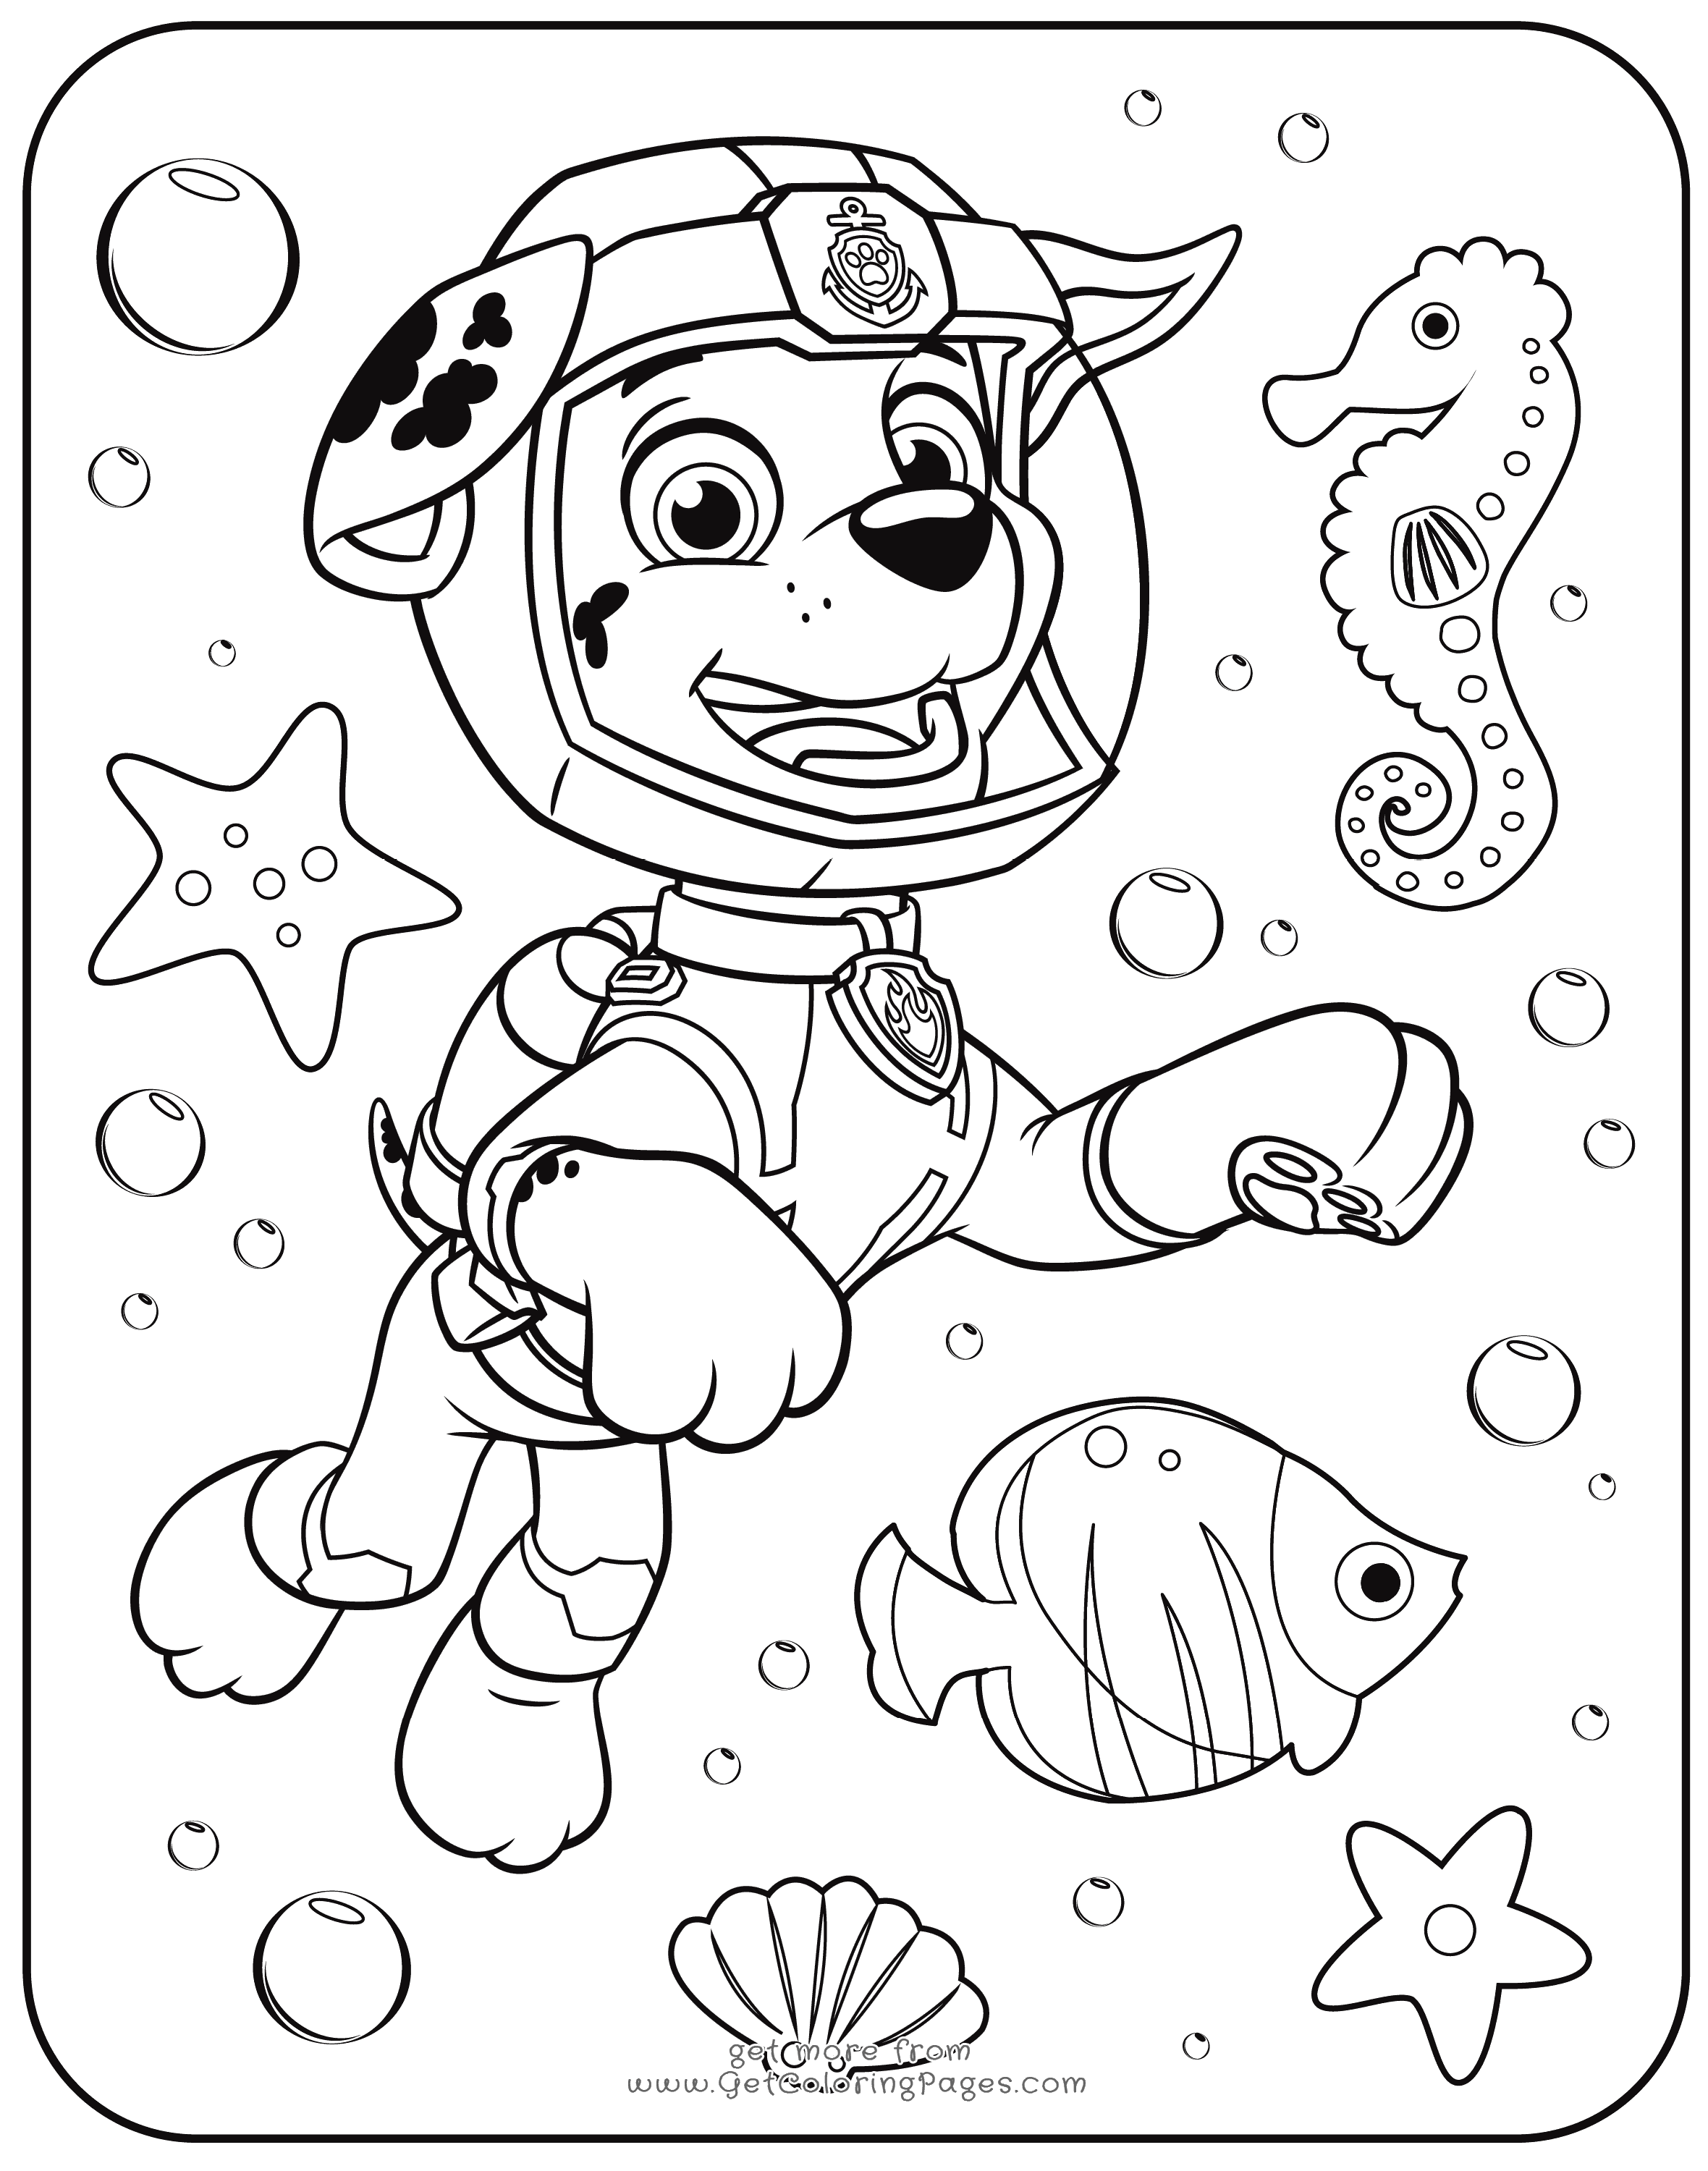 Marshall Underwater Paw Patrol Coloring Page